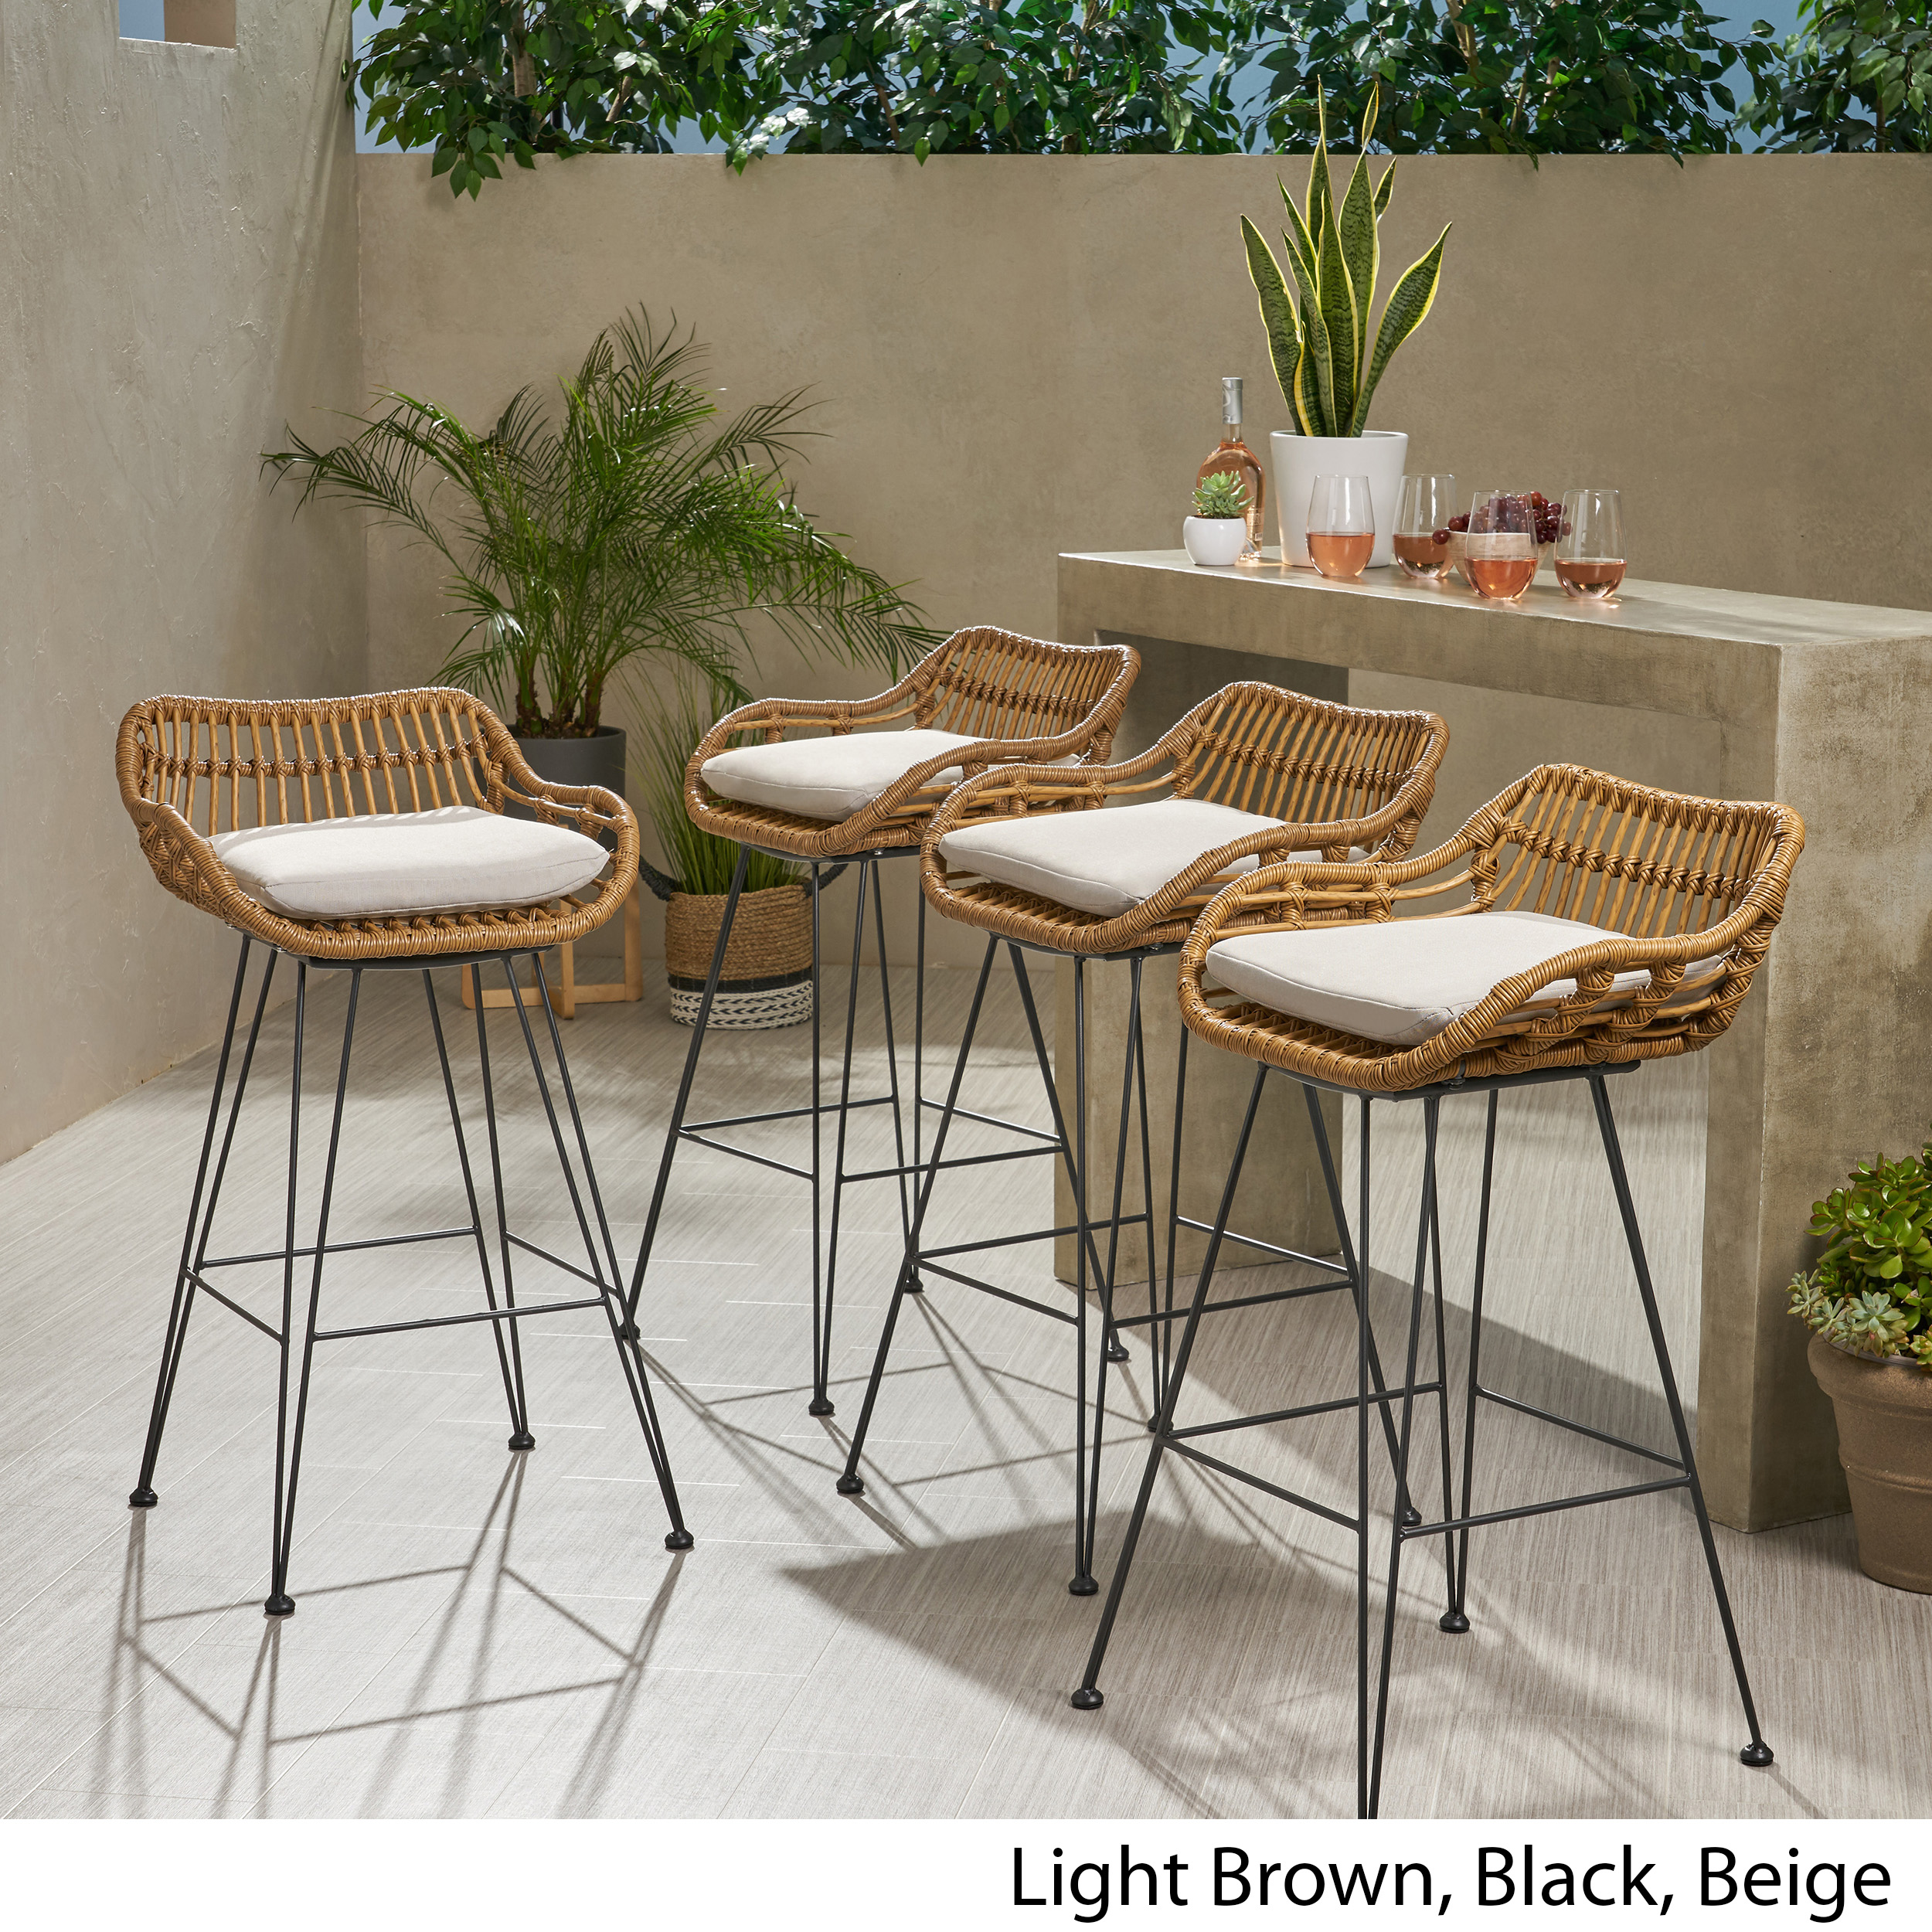 Image of: Candance Outdoor Wicker Barstools With Cushions Set Of 4 Ebay